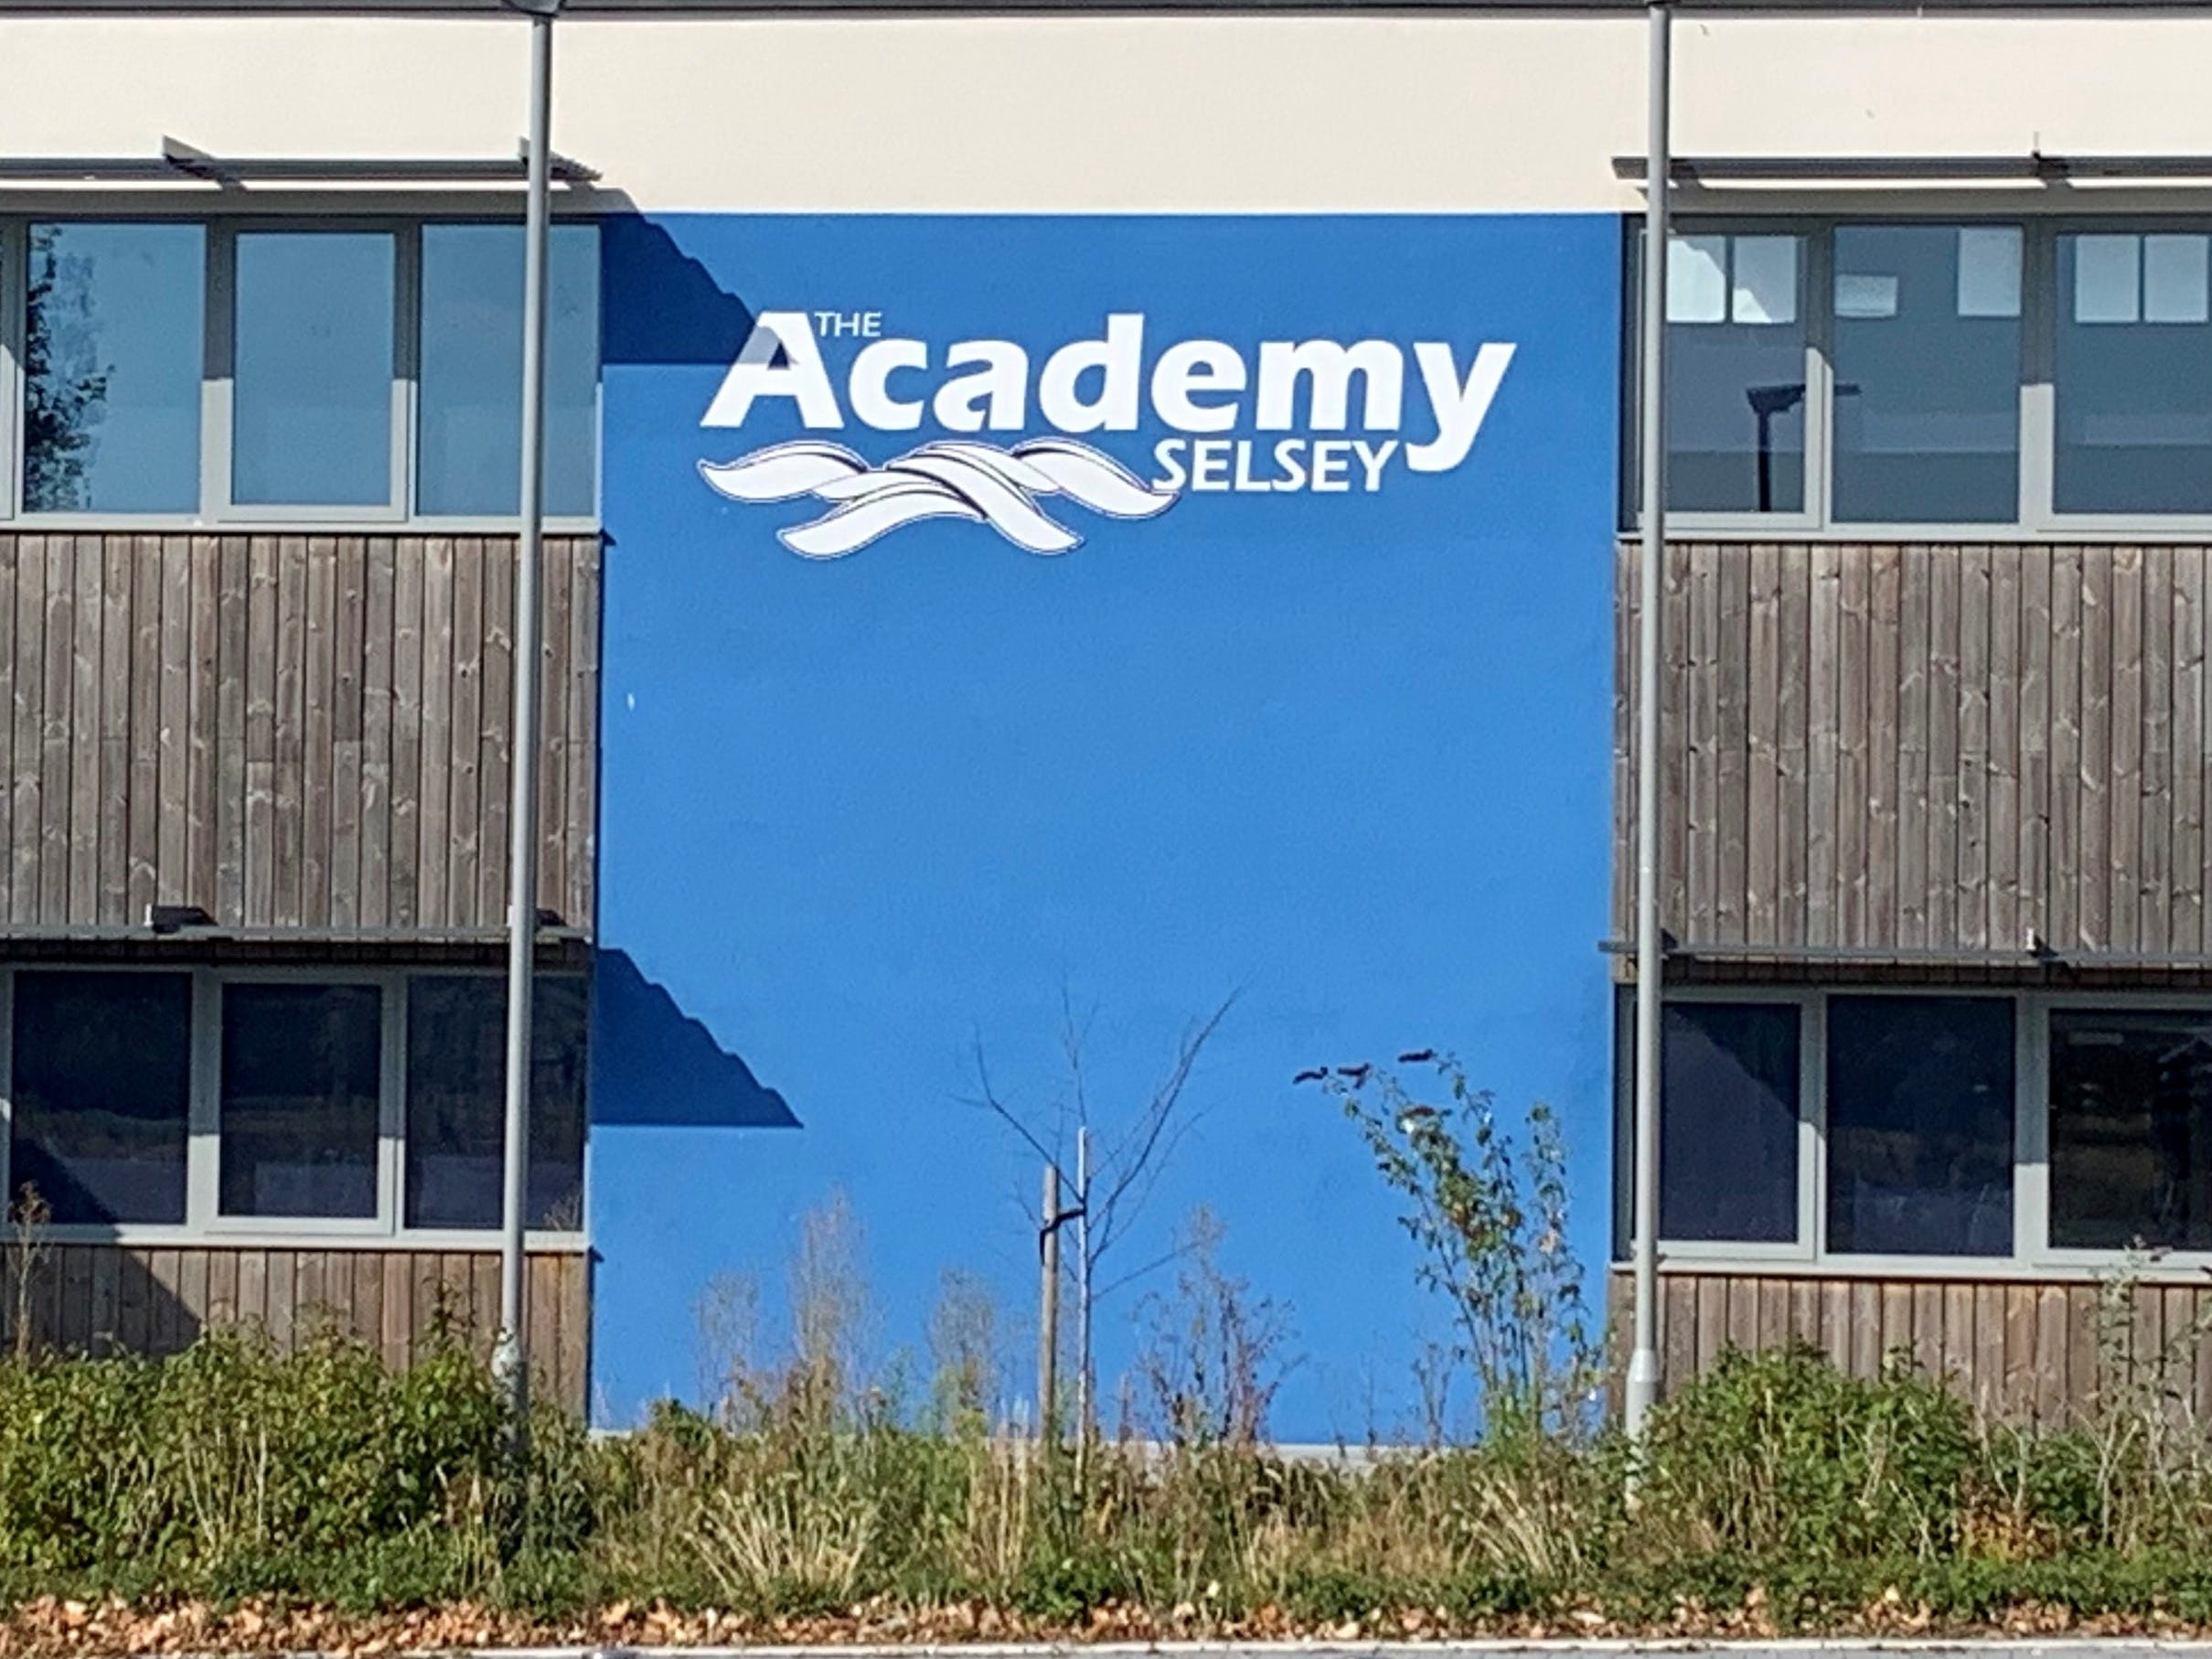 The Academy Selsey